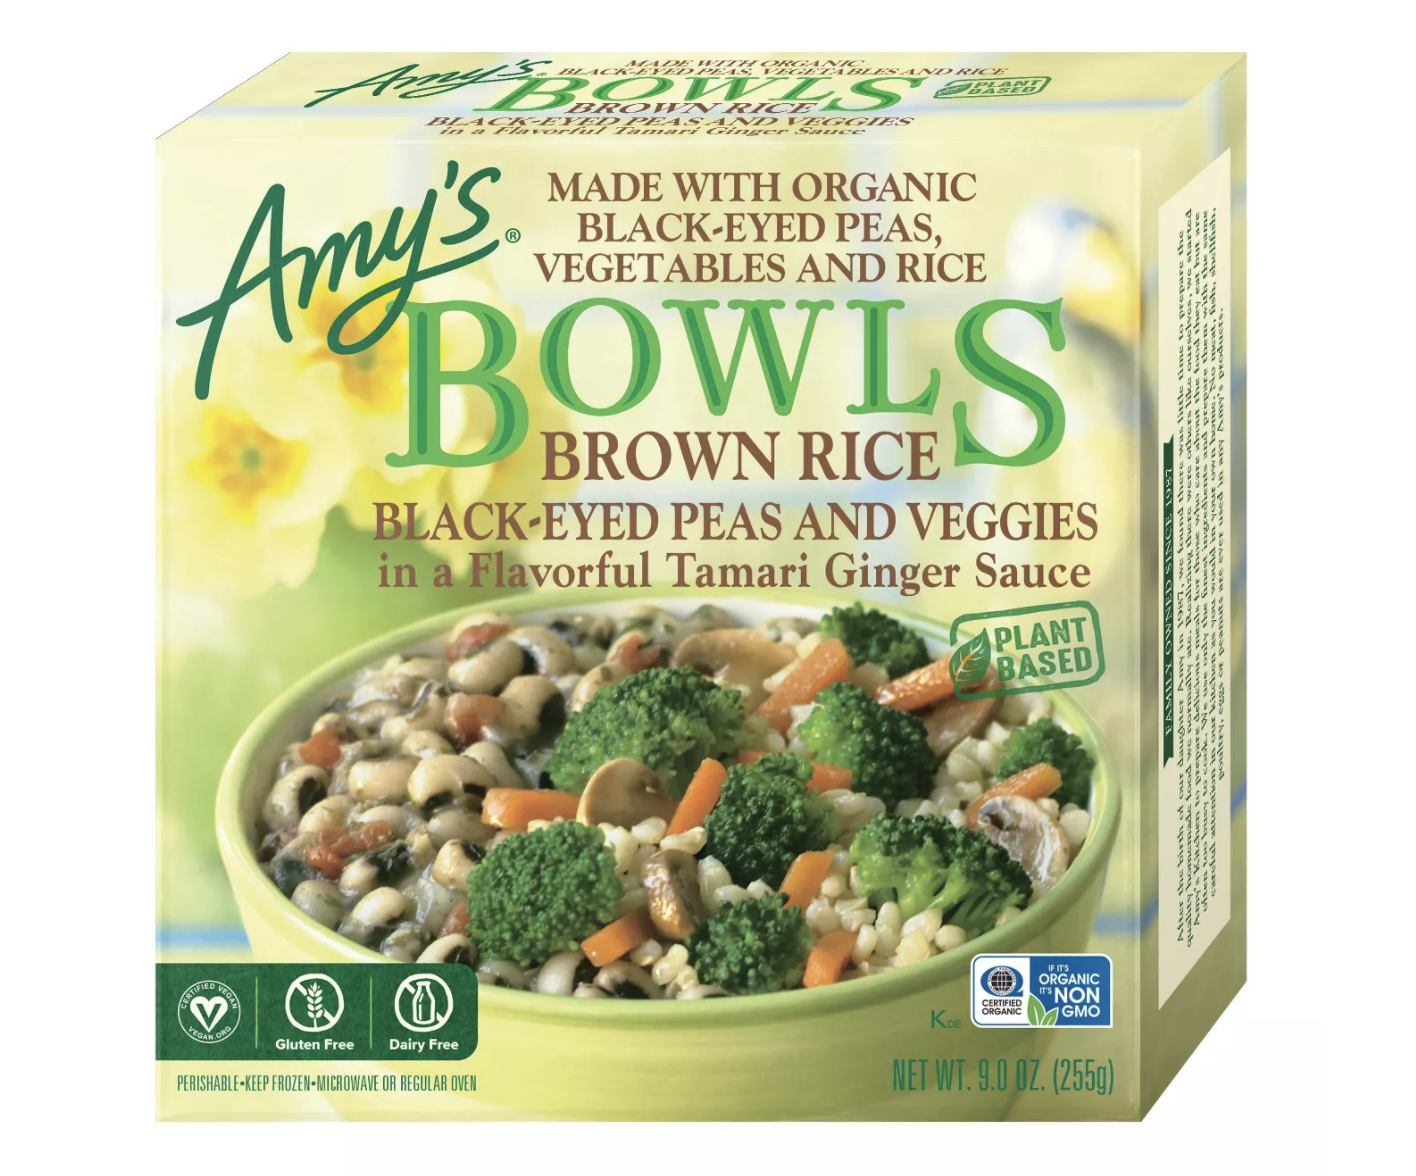 Amy's Gluten Free and Vegan Frozen Brown Rice Black-Eyed Peas and Veggies Bowl